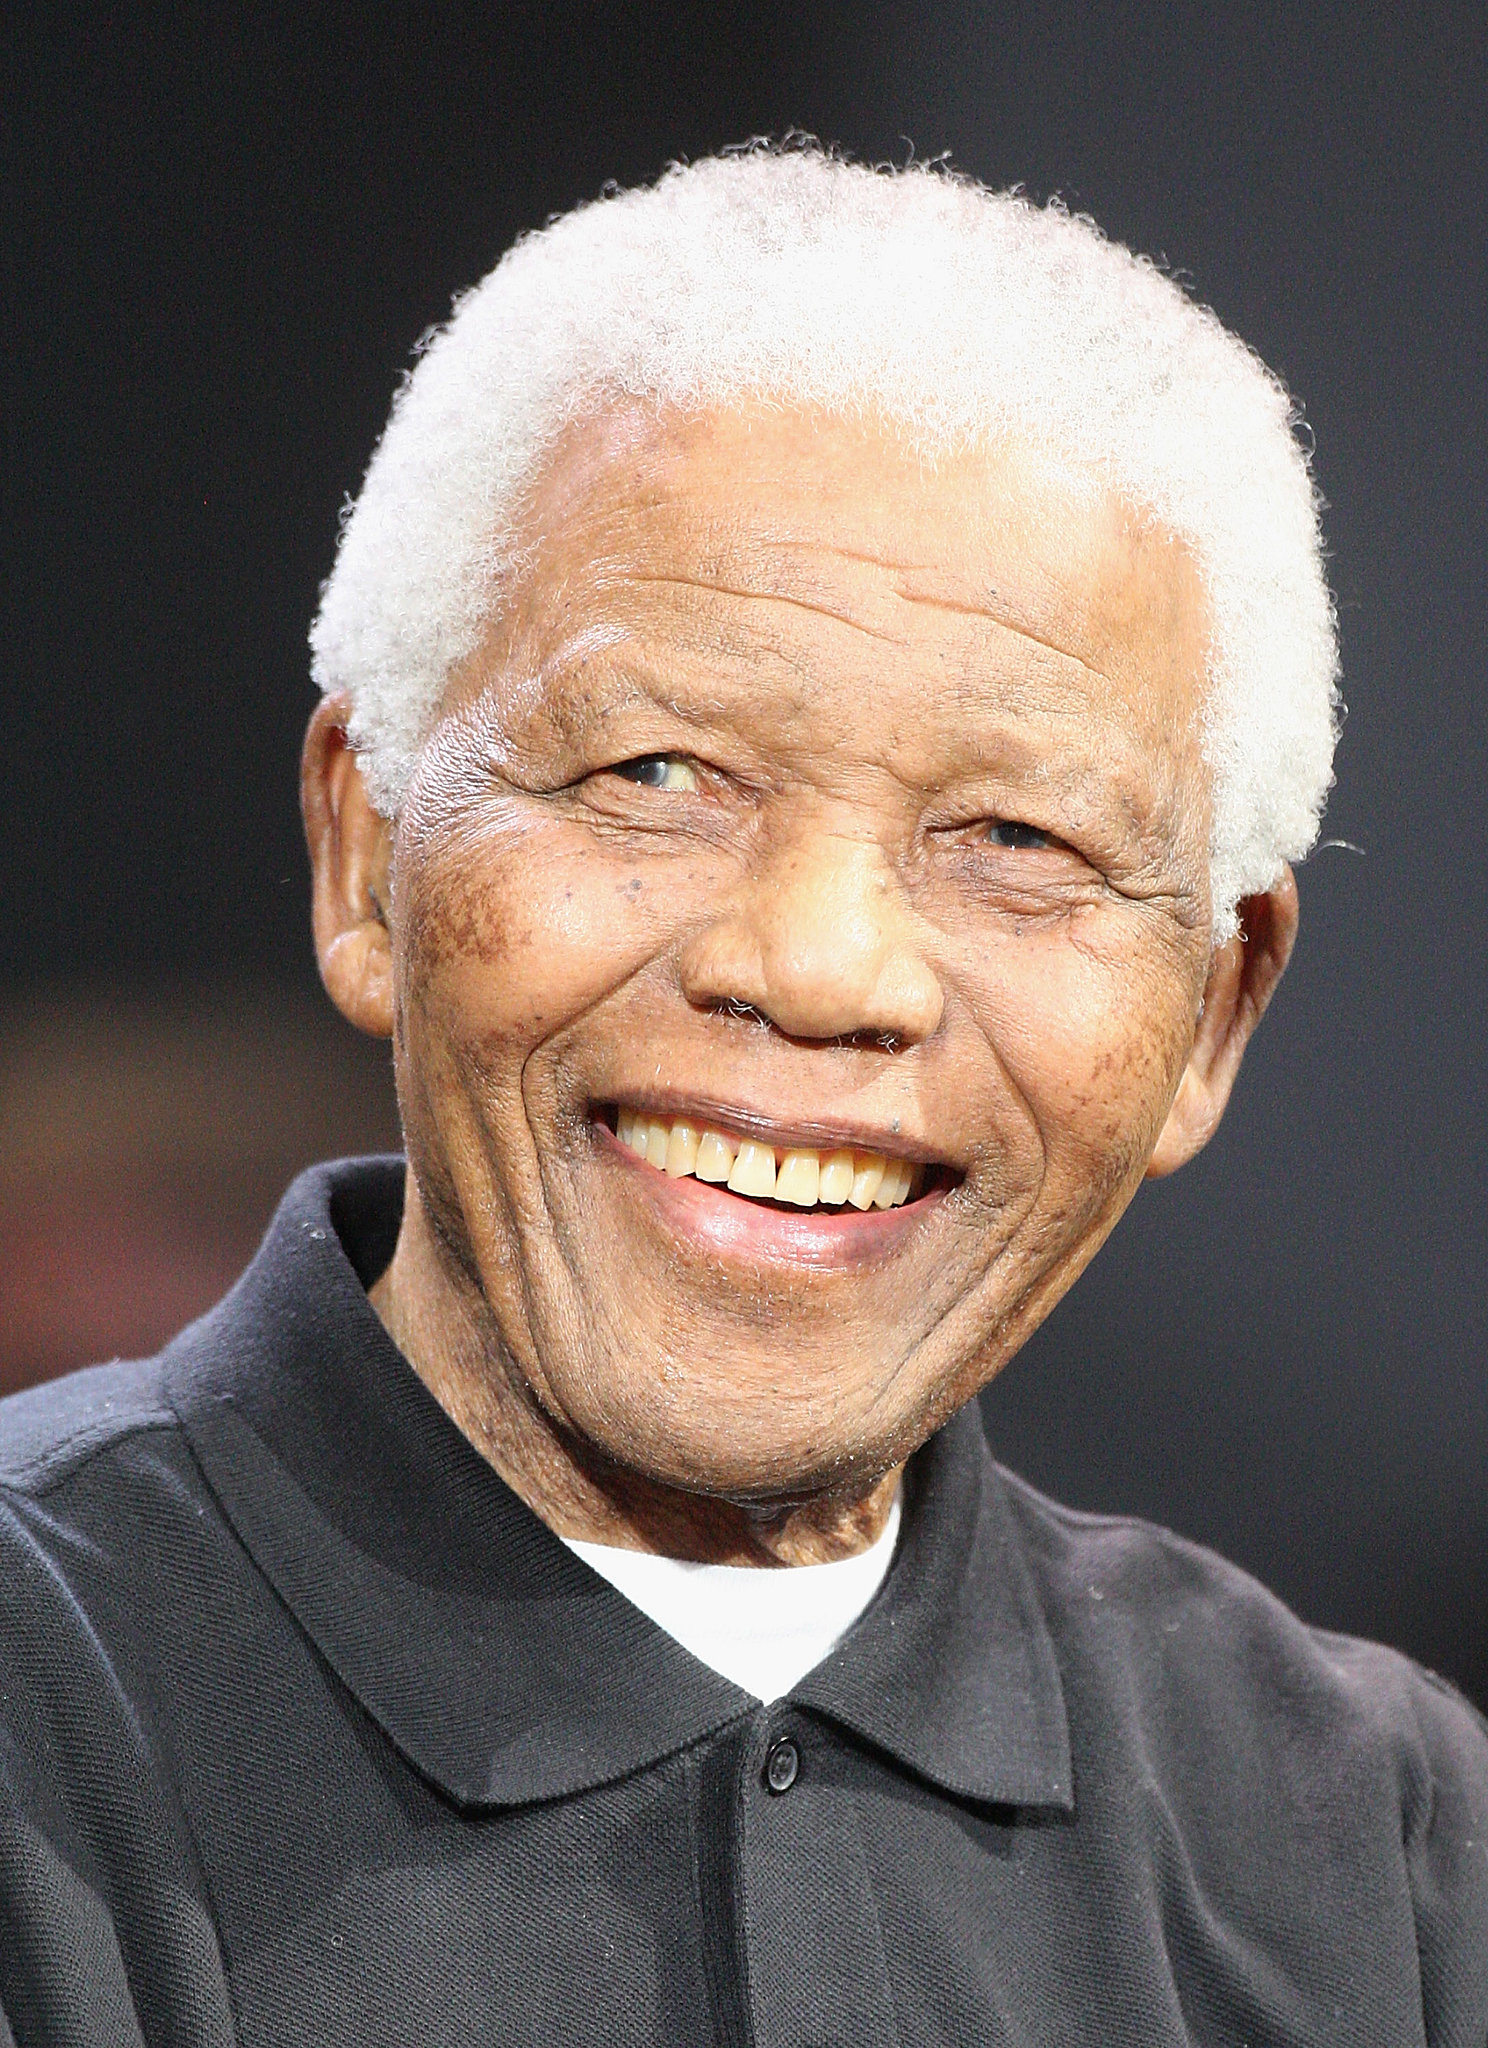 """In 2001, Nelson Mandela told Oprah that he does not fear death: """"Shakespeare put it very well: 'Cowards die many times before their deaths; the valiant never taste of death but once. Of all the wonders that I yet have heard, it seems to me most strange that men should fear; seeing that death, a necessary end, will come when it will come.' When you believe that, you disappear under a cloud of glory. Your name lives beyond the grave — and that is my approach."""""""